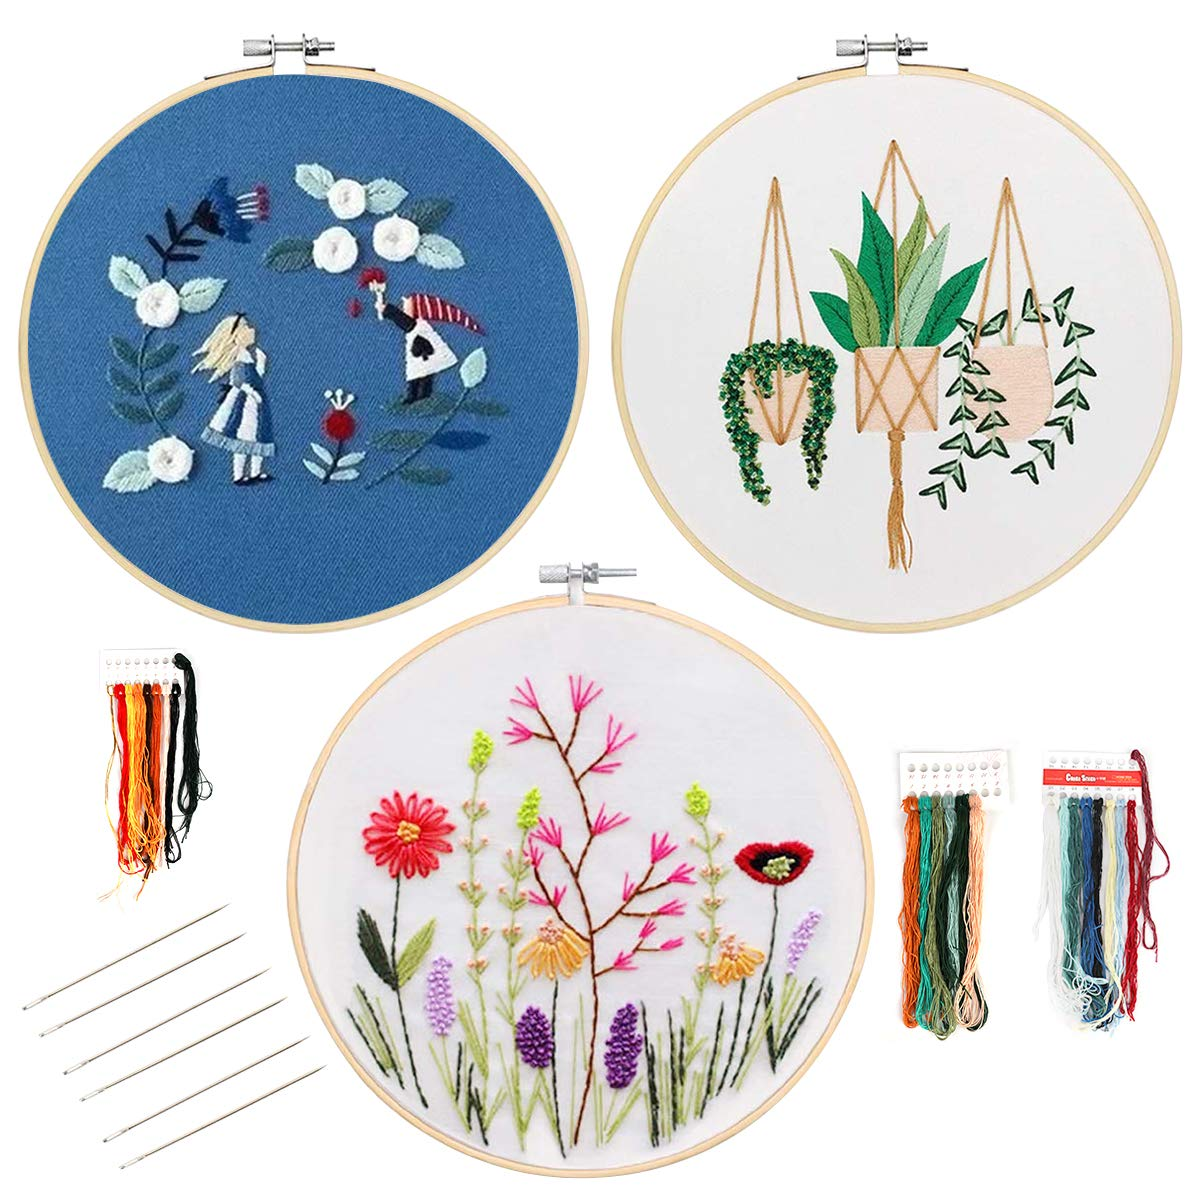 Heflashor 3 Packs Flower Embroidery Kits Embroidery Starter Kit Embroidery Set Including Embroidery Cloth with Pattern, Embroidery Hoop, Color Threads and Tools Kit